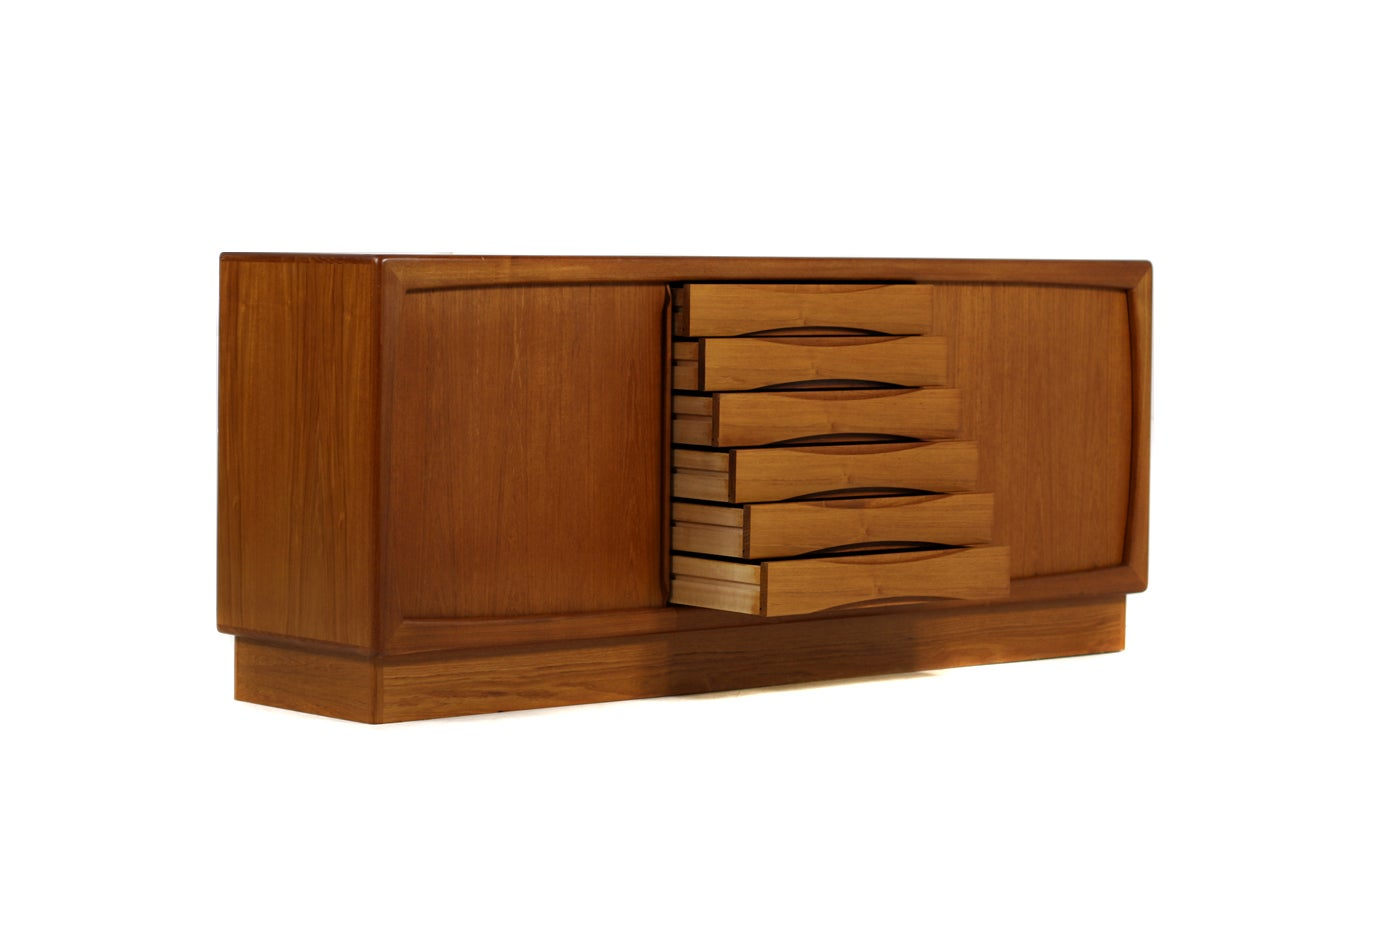 1960s Dyrlund Teak Sideboard With Sliding Doors And Drawers Danish